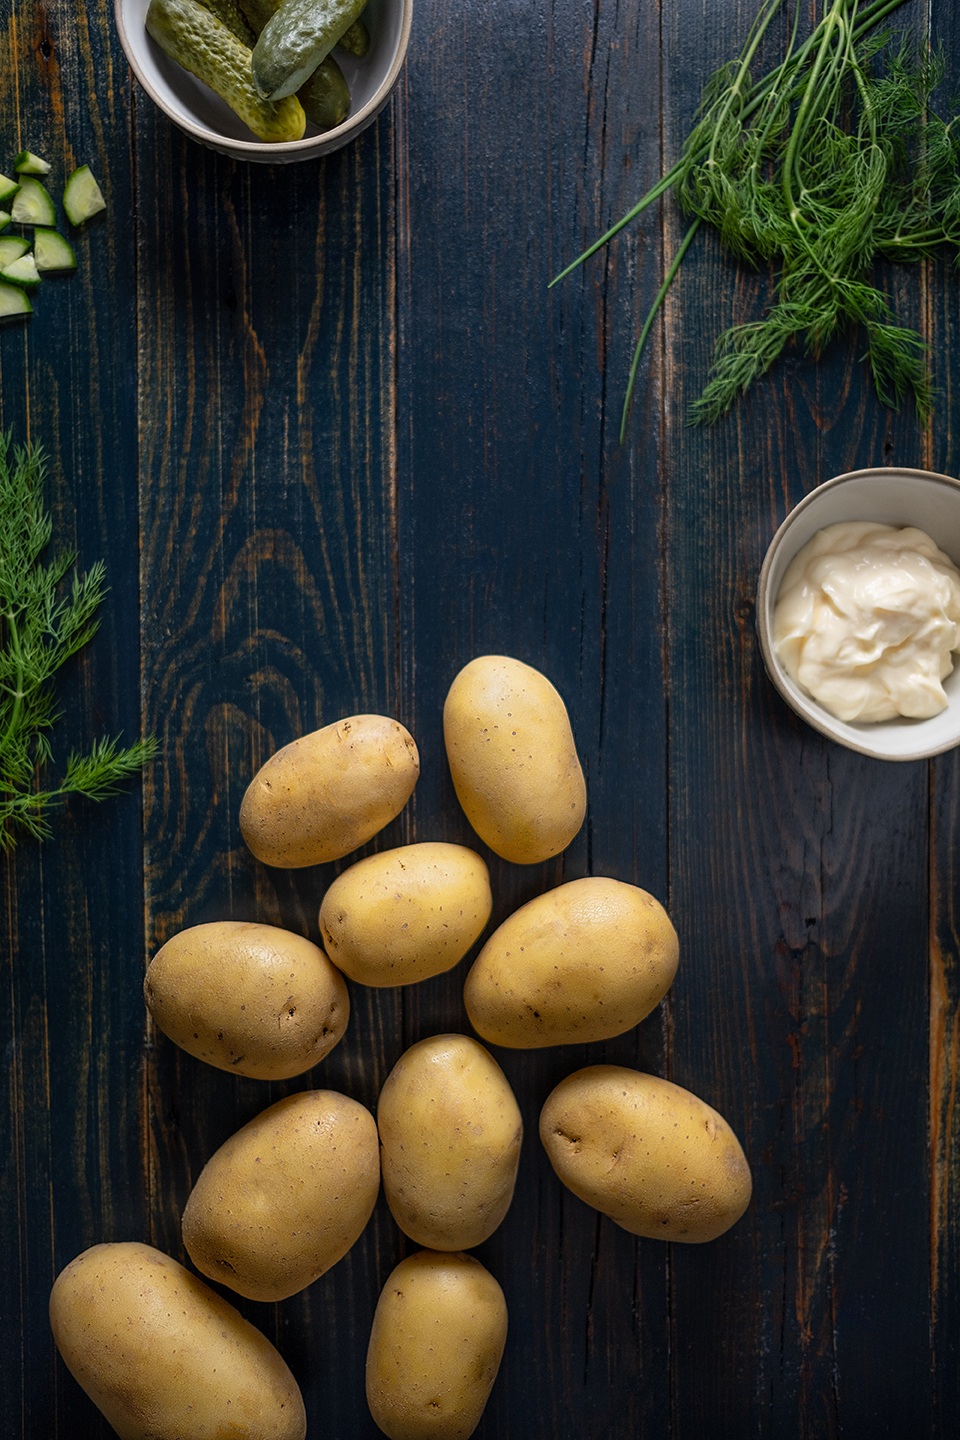 Potatoes, mayonnaise, dill and small pickles on a rustic blue background.